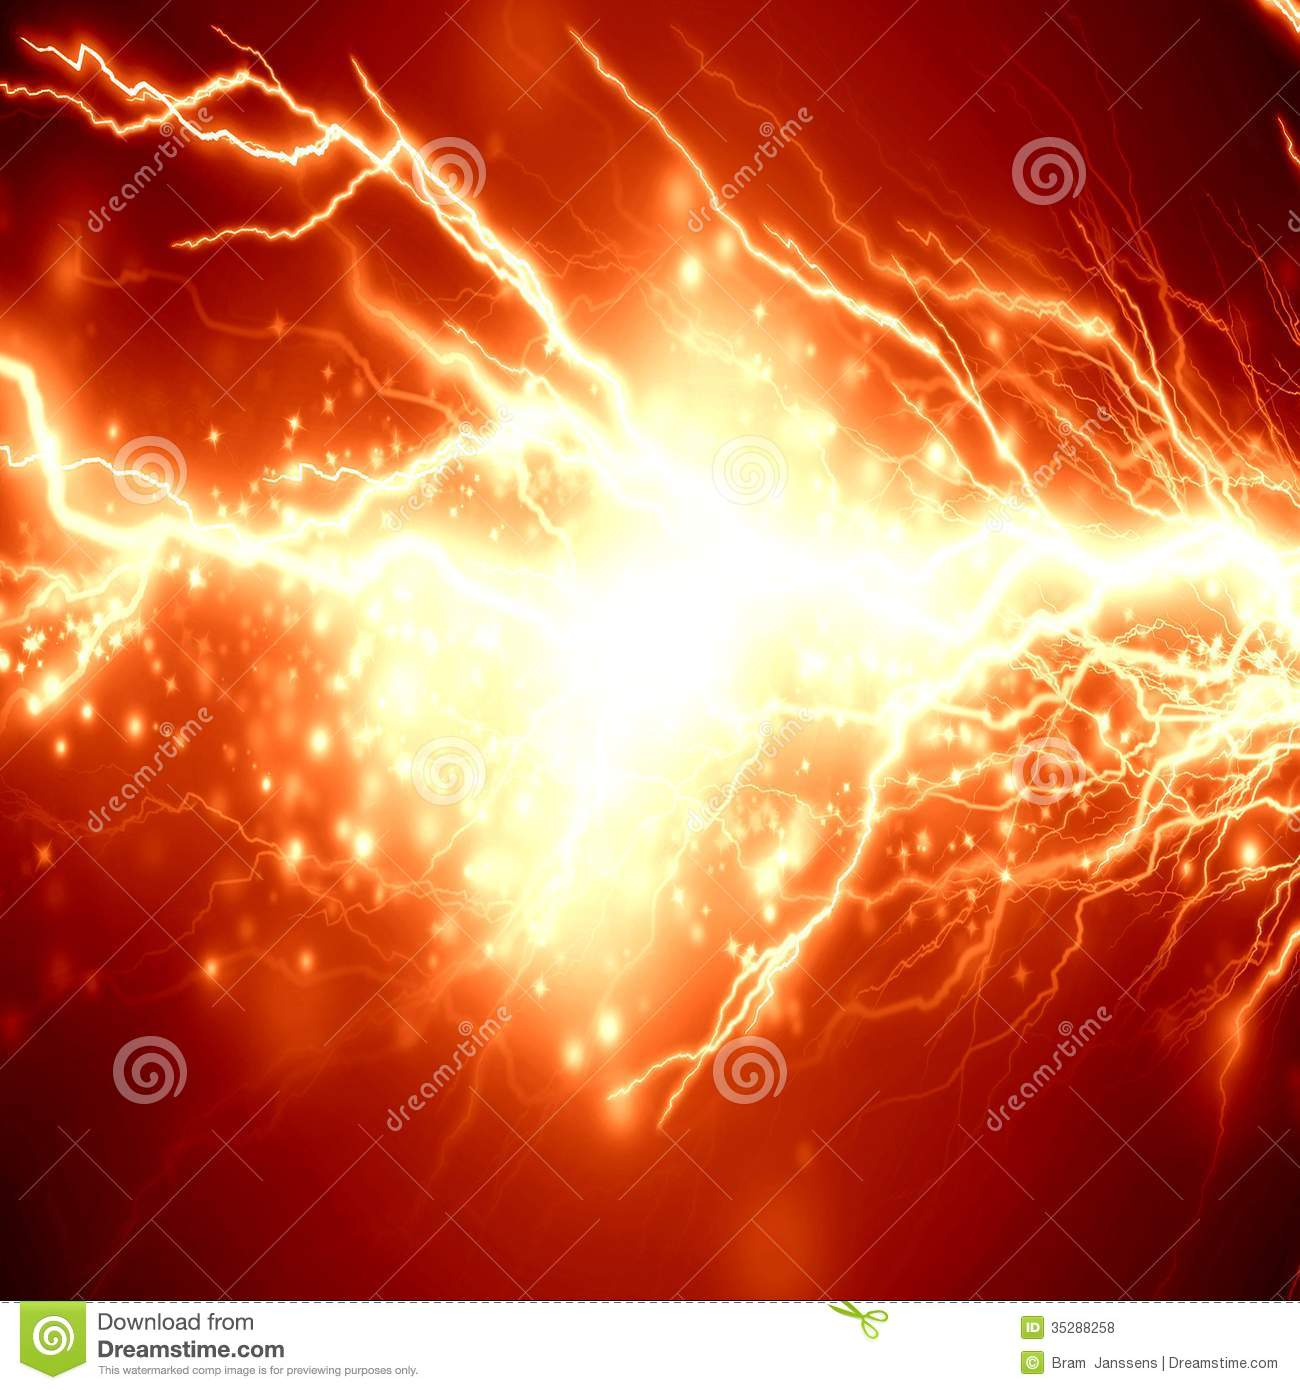 Electric Background Related Keywords & Suggestions - Electric ...